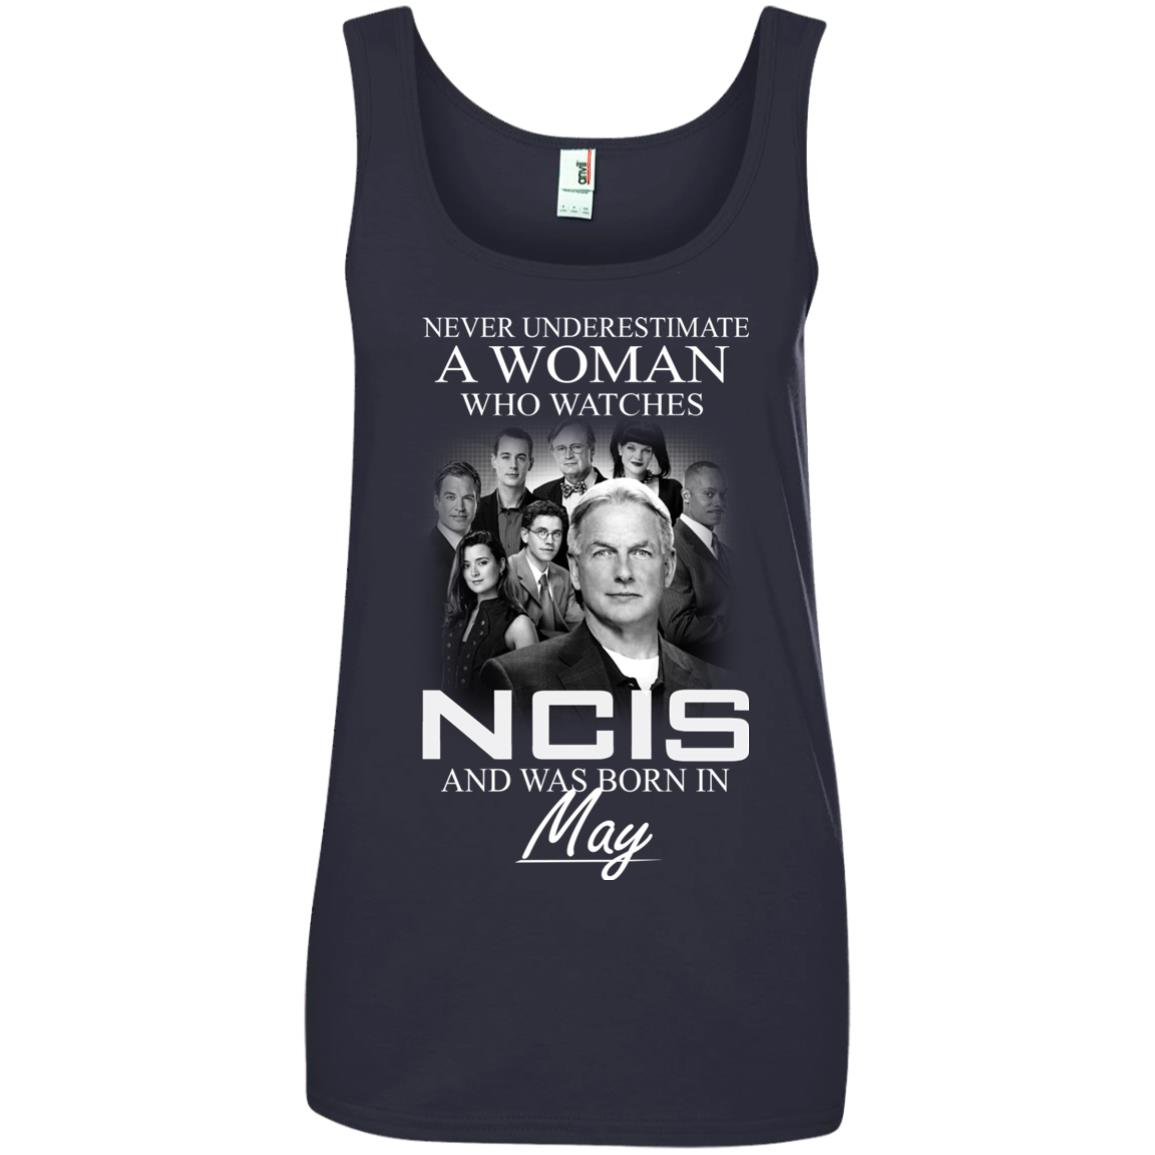 Never underestimate A Woman who watches NCIS and was born in May shirt - image 1191